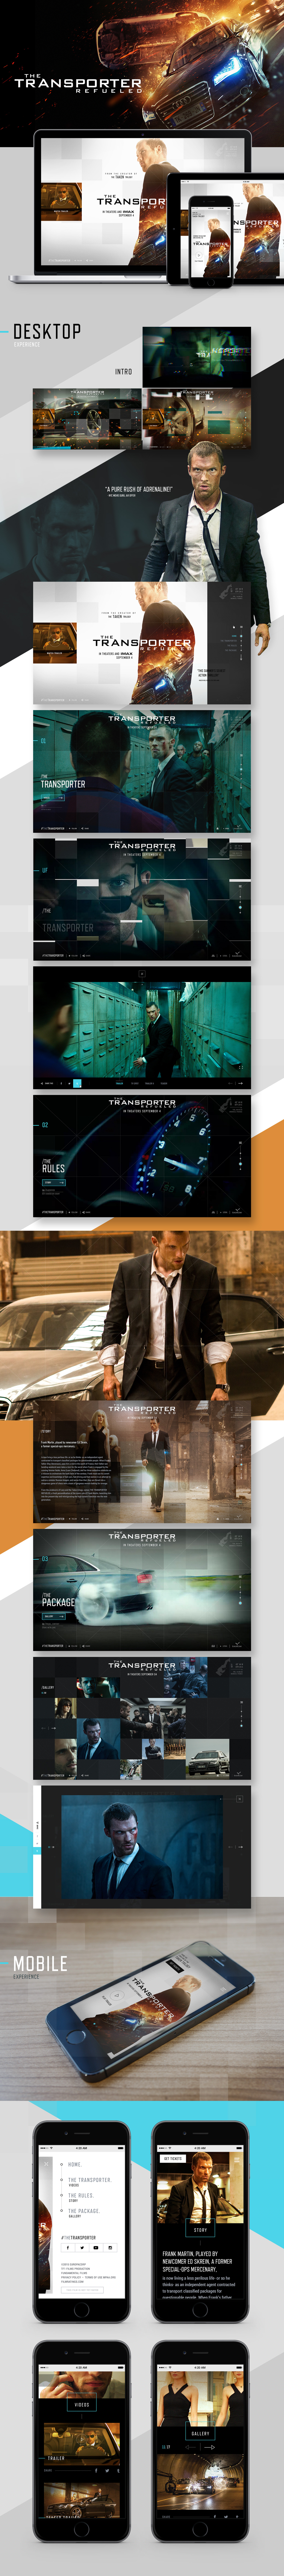 Transporter Refueled by keithevans.com